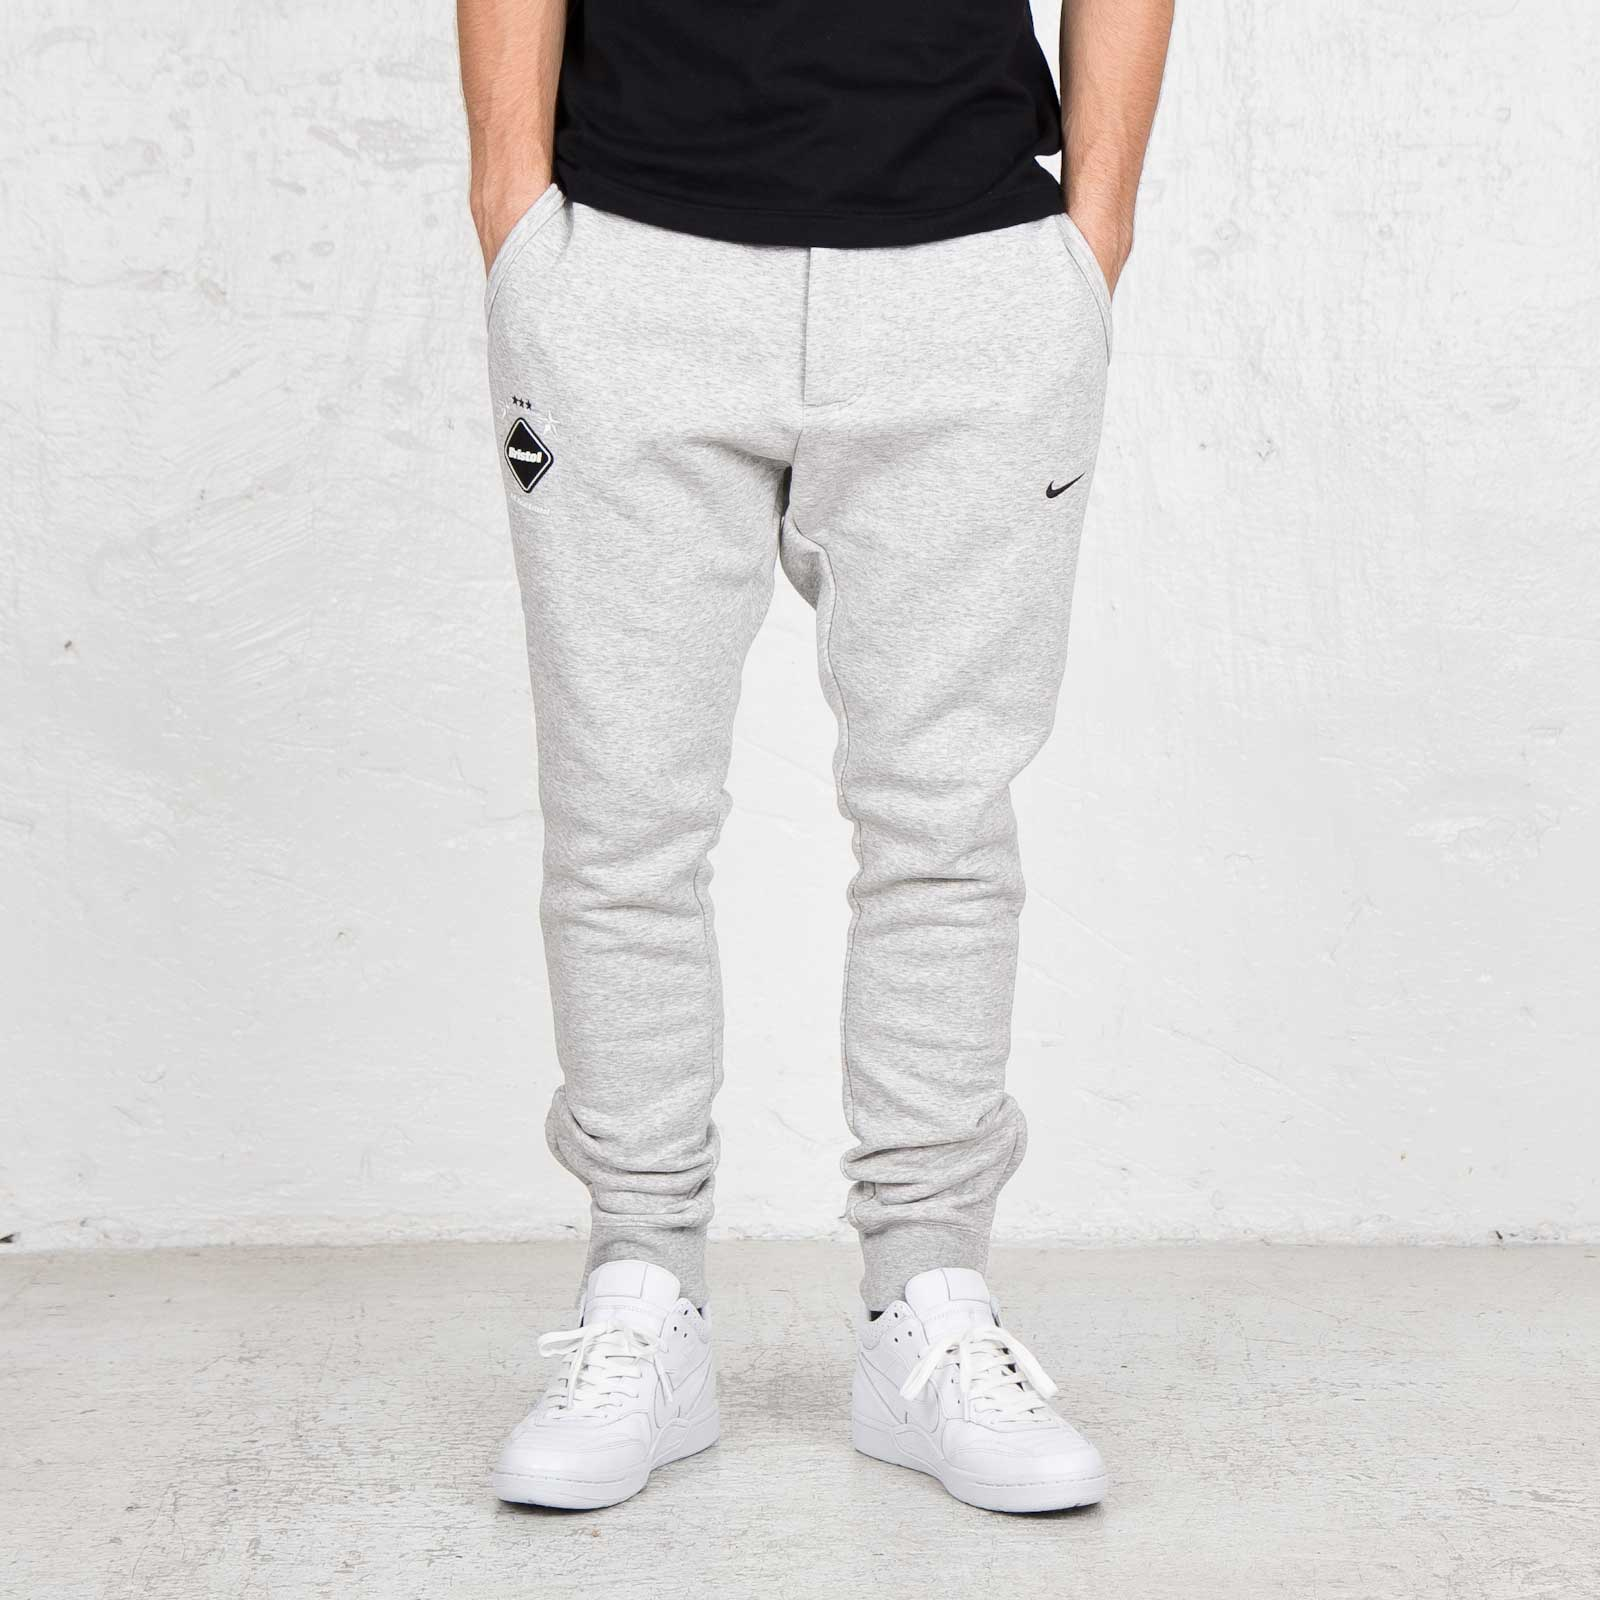 sports shoes 6c622 db306 Nike AS FCRB Sweat Long Pant